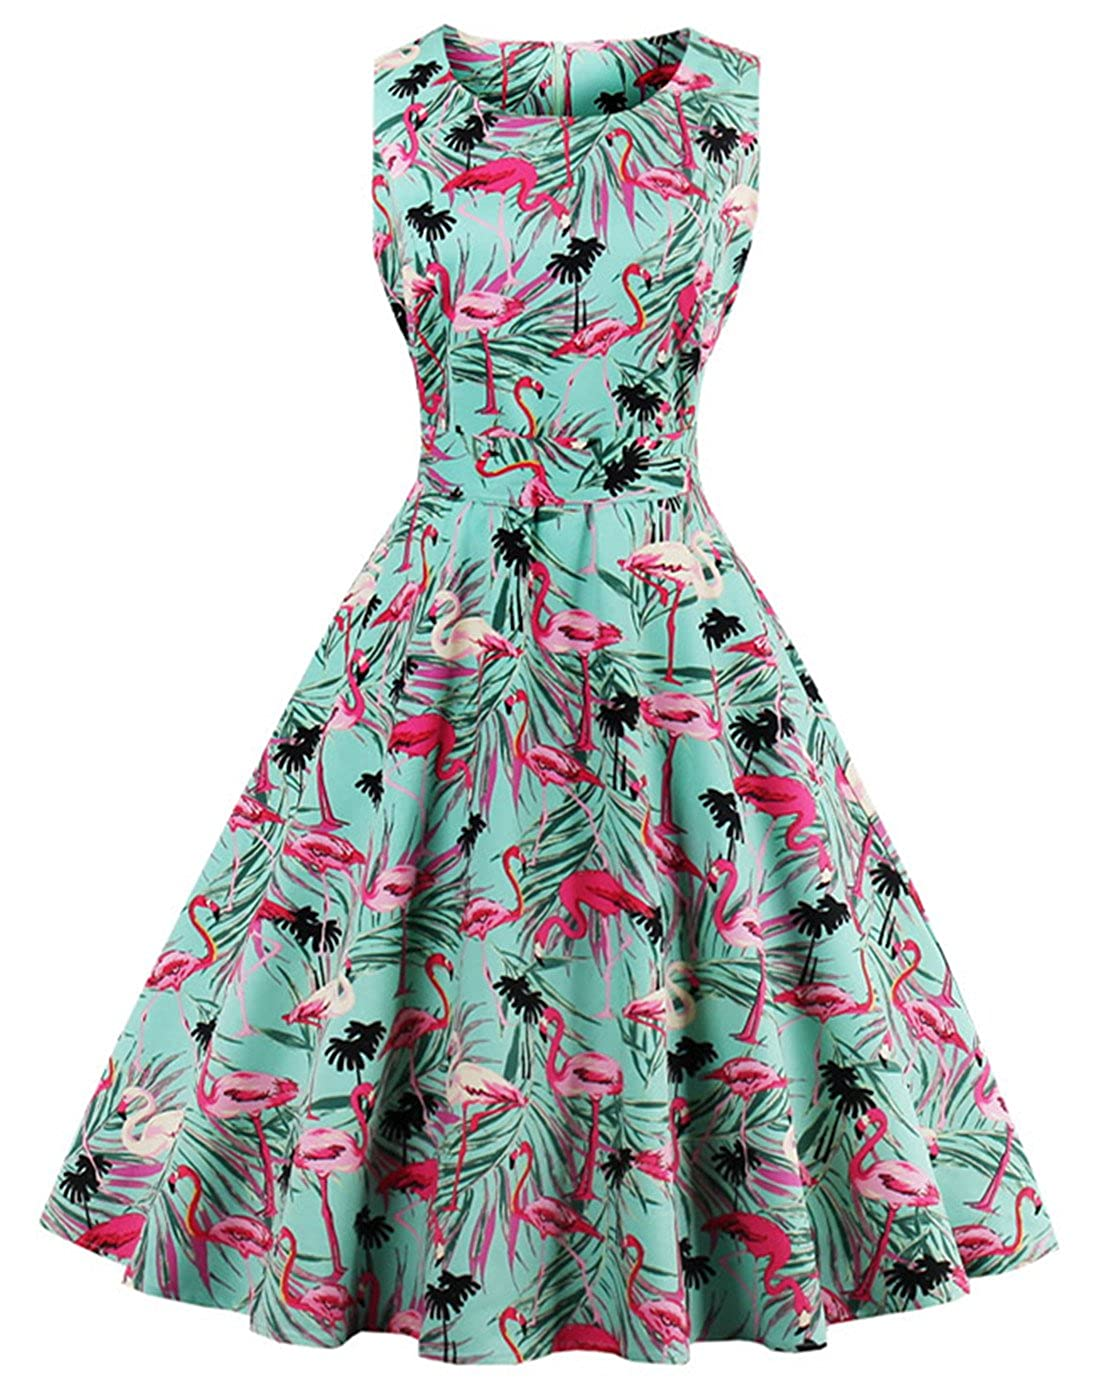 500 Vintage Style Dresses for Sale | Vintage Inspired Dresses Wellwits Womens Tropical Leaf Flamingo Hepburn 1950s Vintage Swing Dress $24.98 AT vintagedancer.com